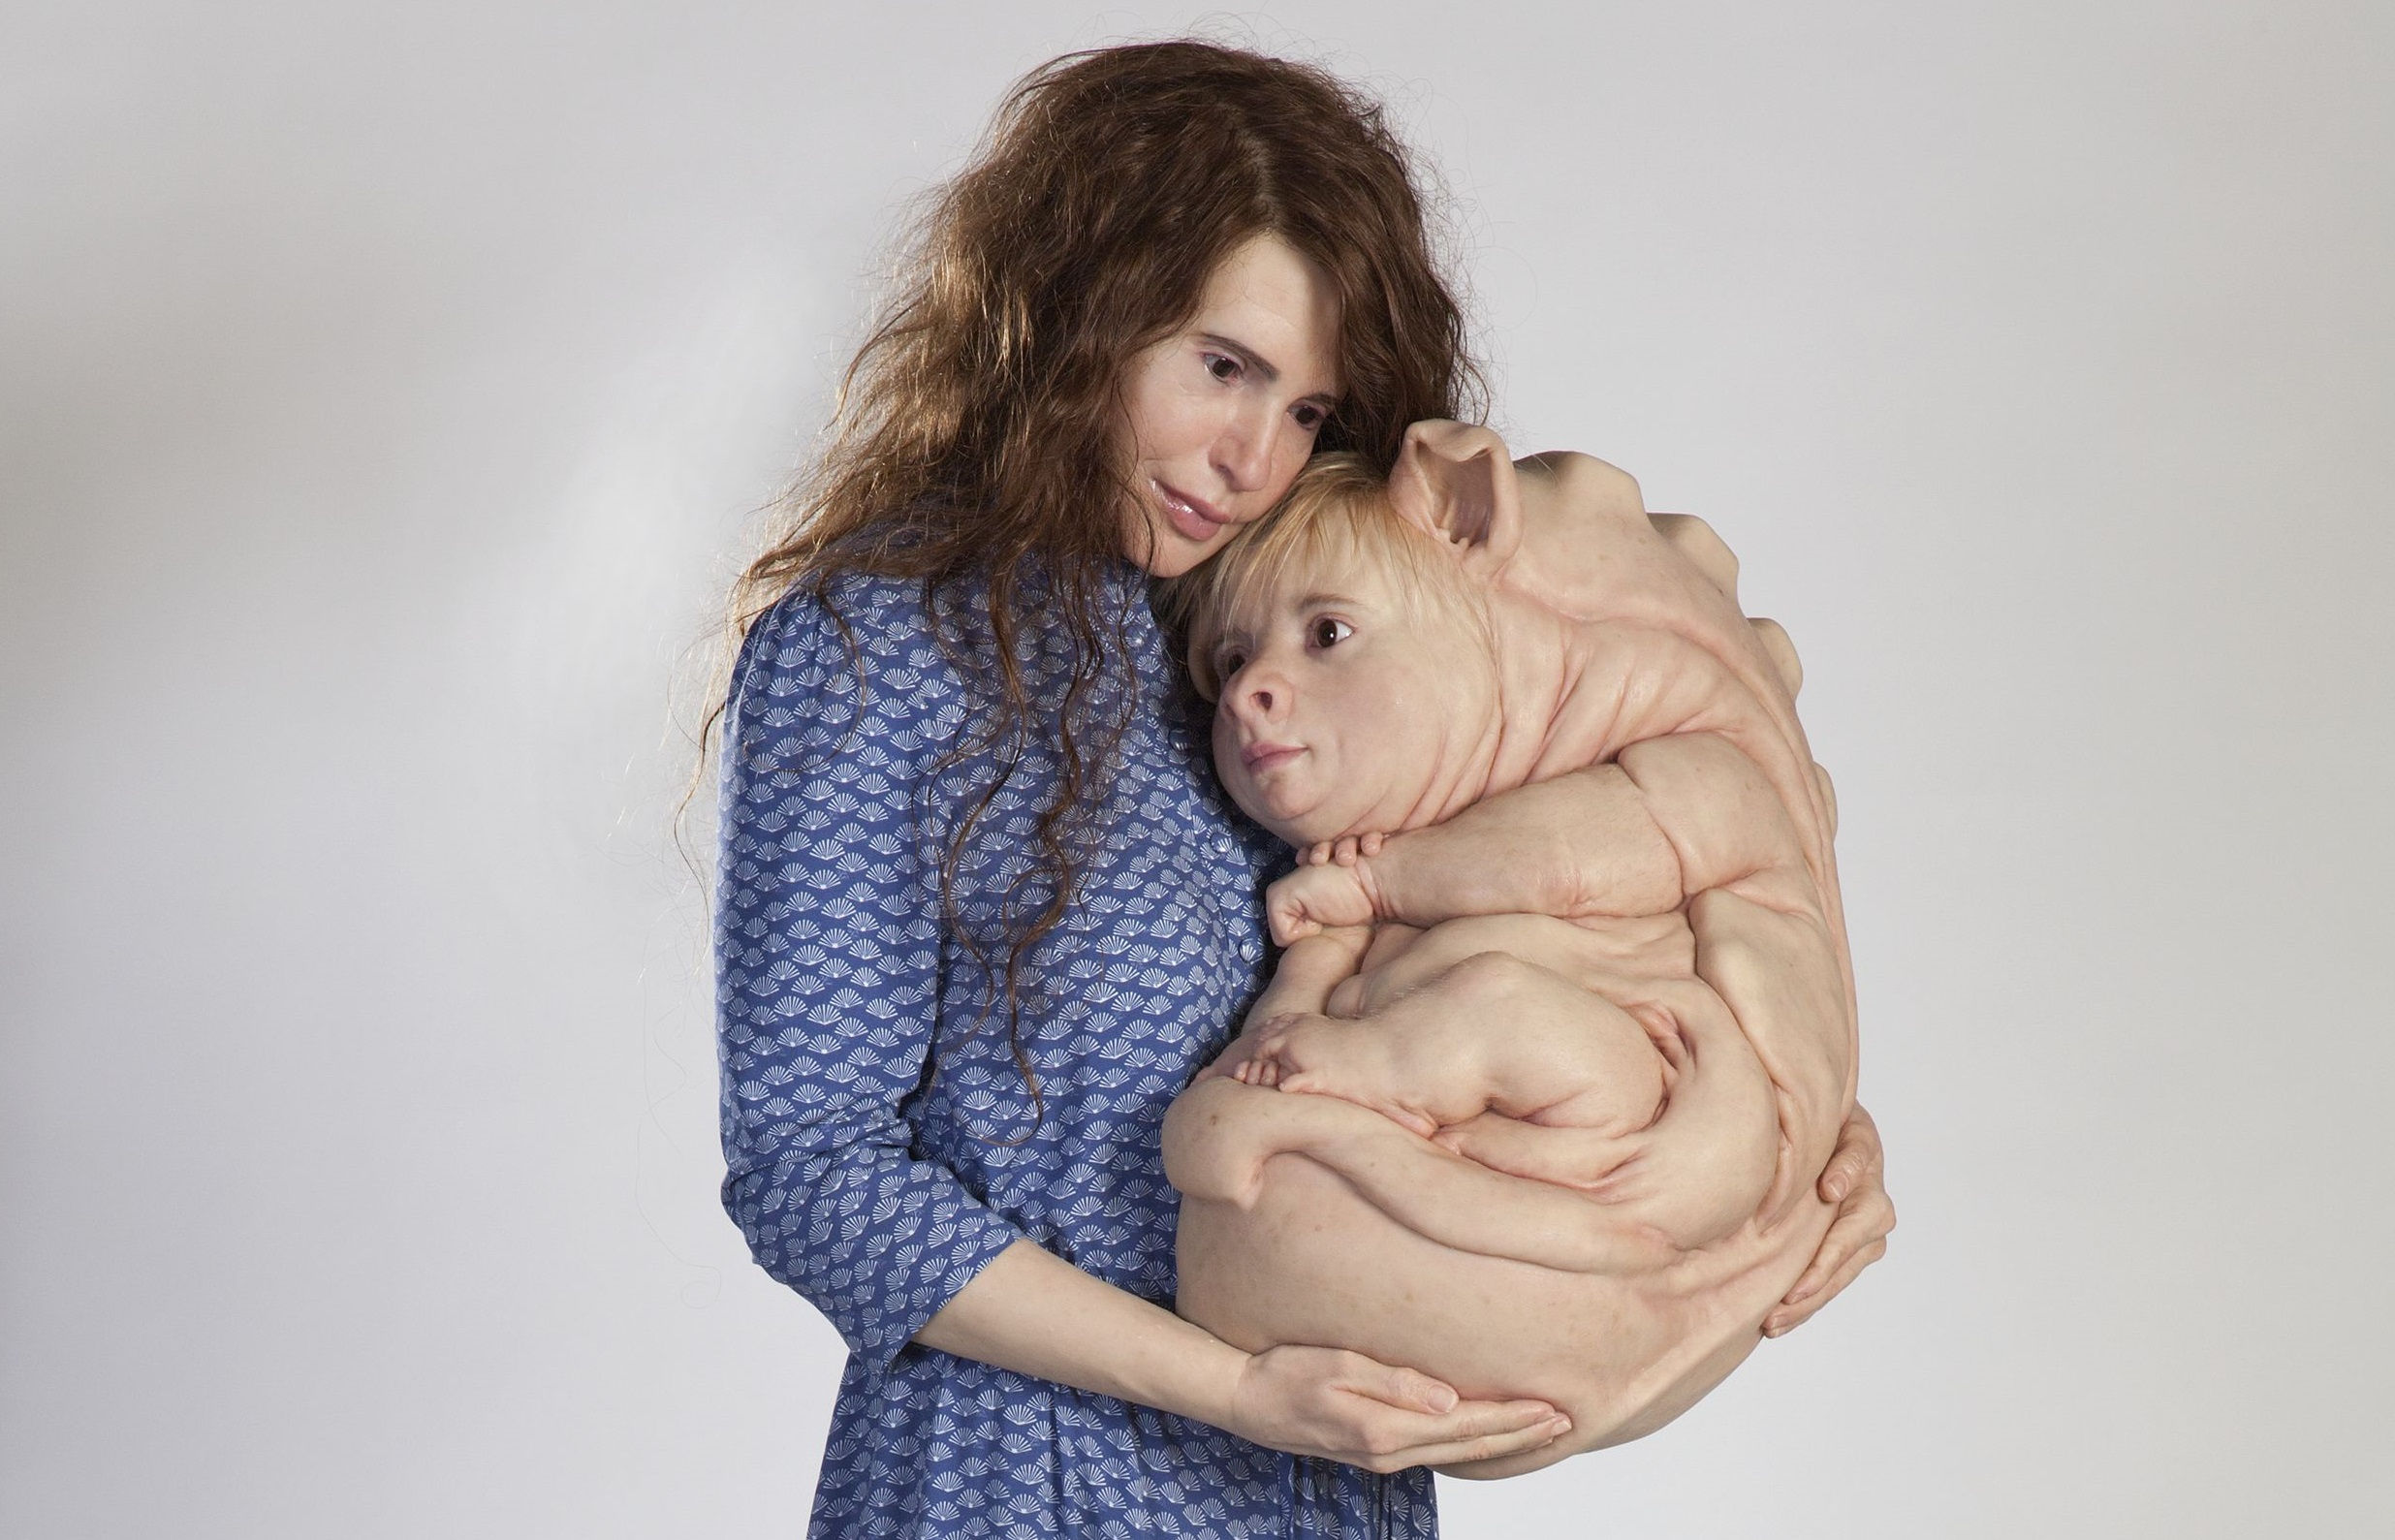 © Patricia Piccinini, The Young Family, 2002, Photo: Graham Baring, Courtesy of the artist